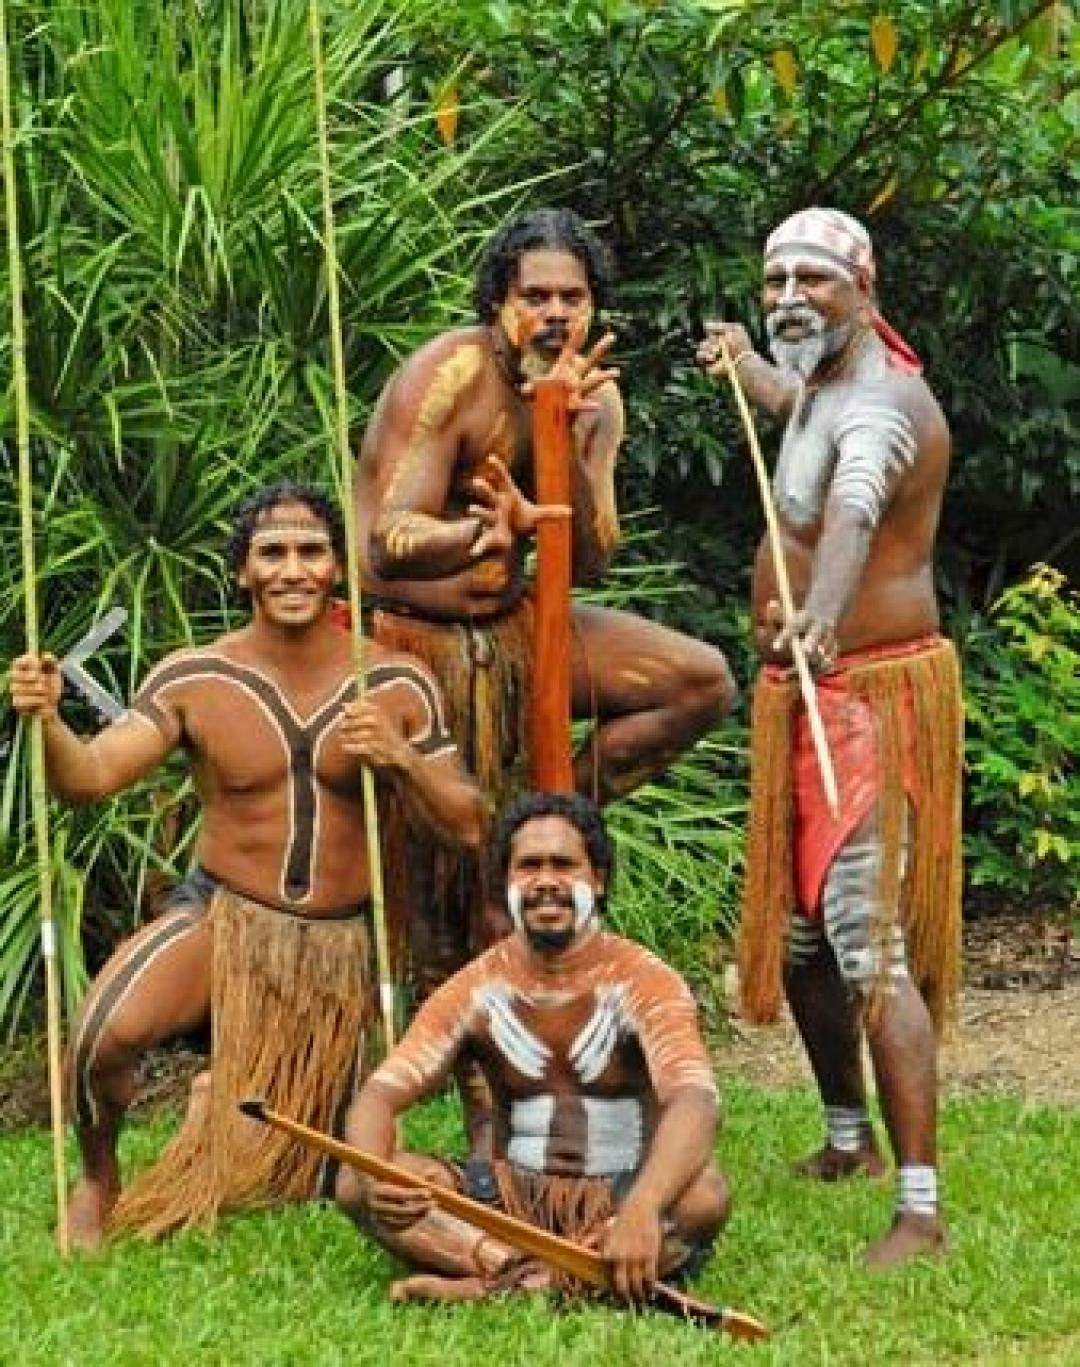 indigenous music of australia essay From the 2006 census, the current indigenous population of australia was estimated to be 517,200 or 25% of the total population and in the northern territory the estimated population of 66,600 was 129% of the total indigenous population and 316% of the total population.